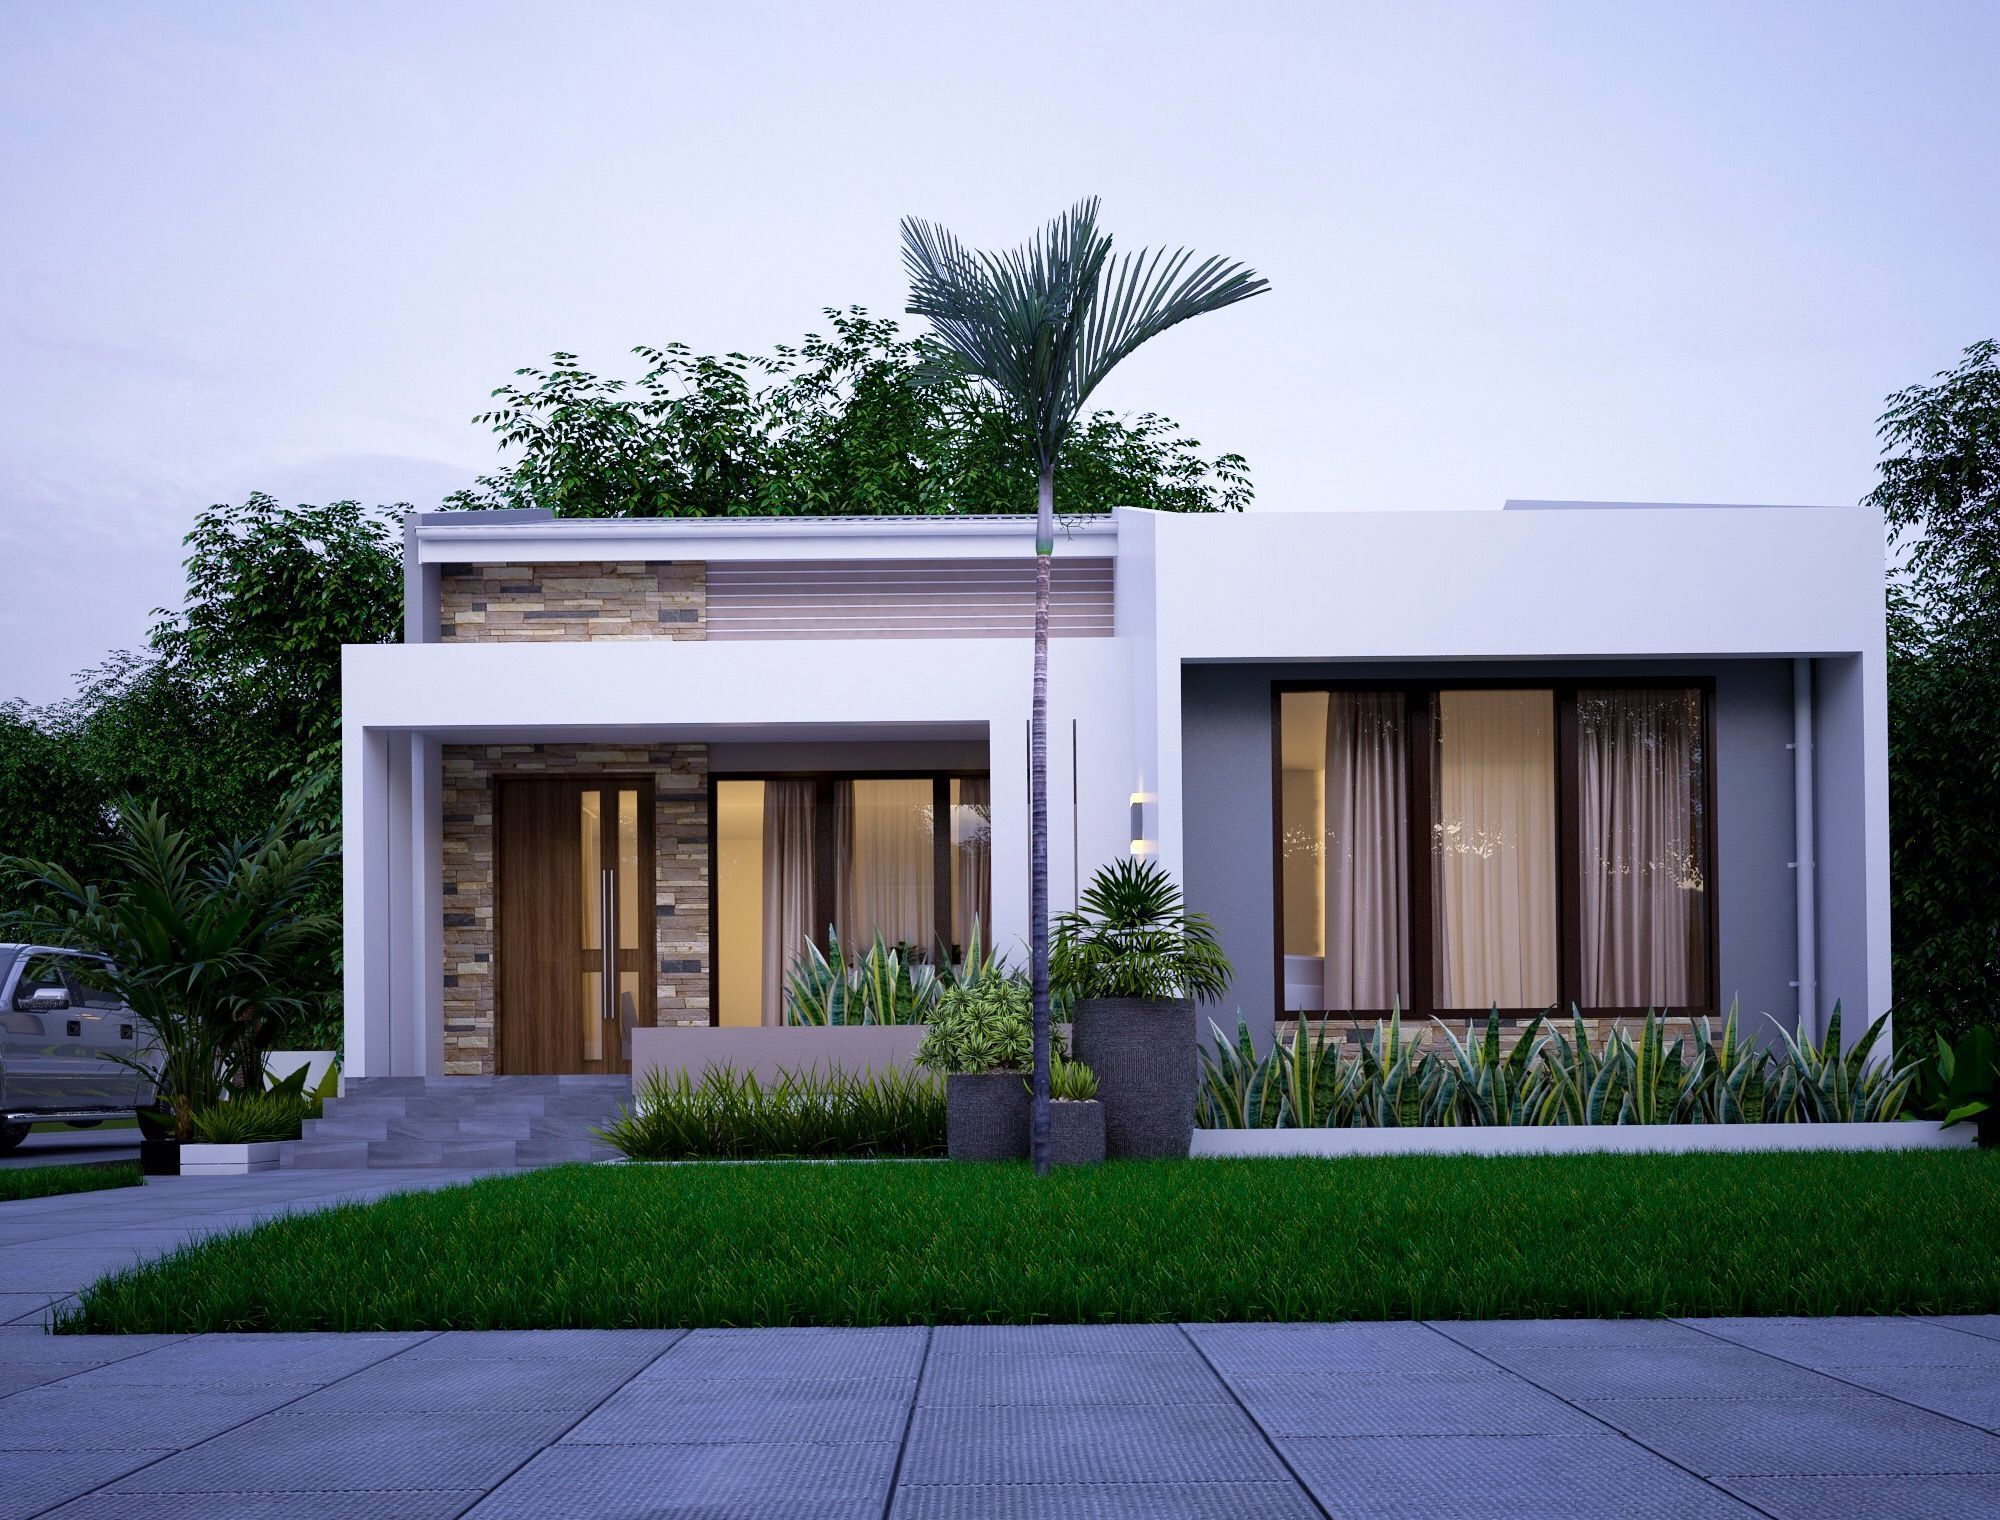 44 Minimalist Home Design Ideas 1 Floor Minimalist House Design